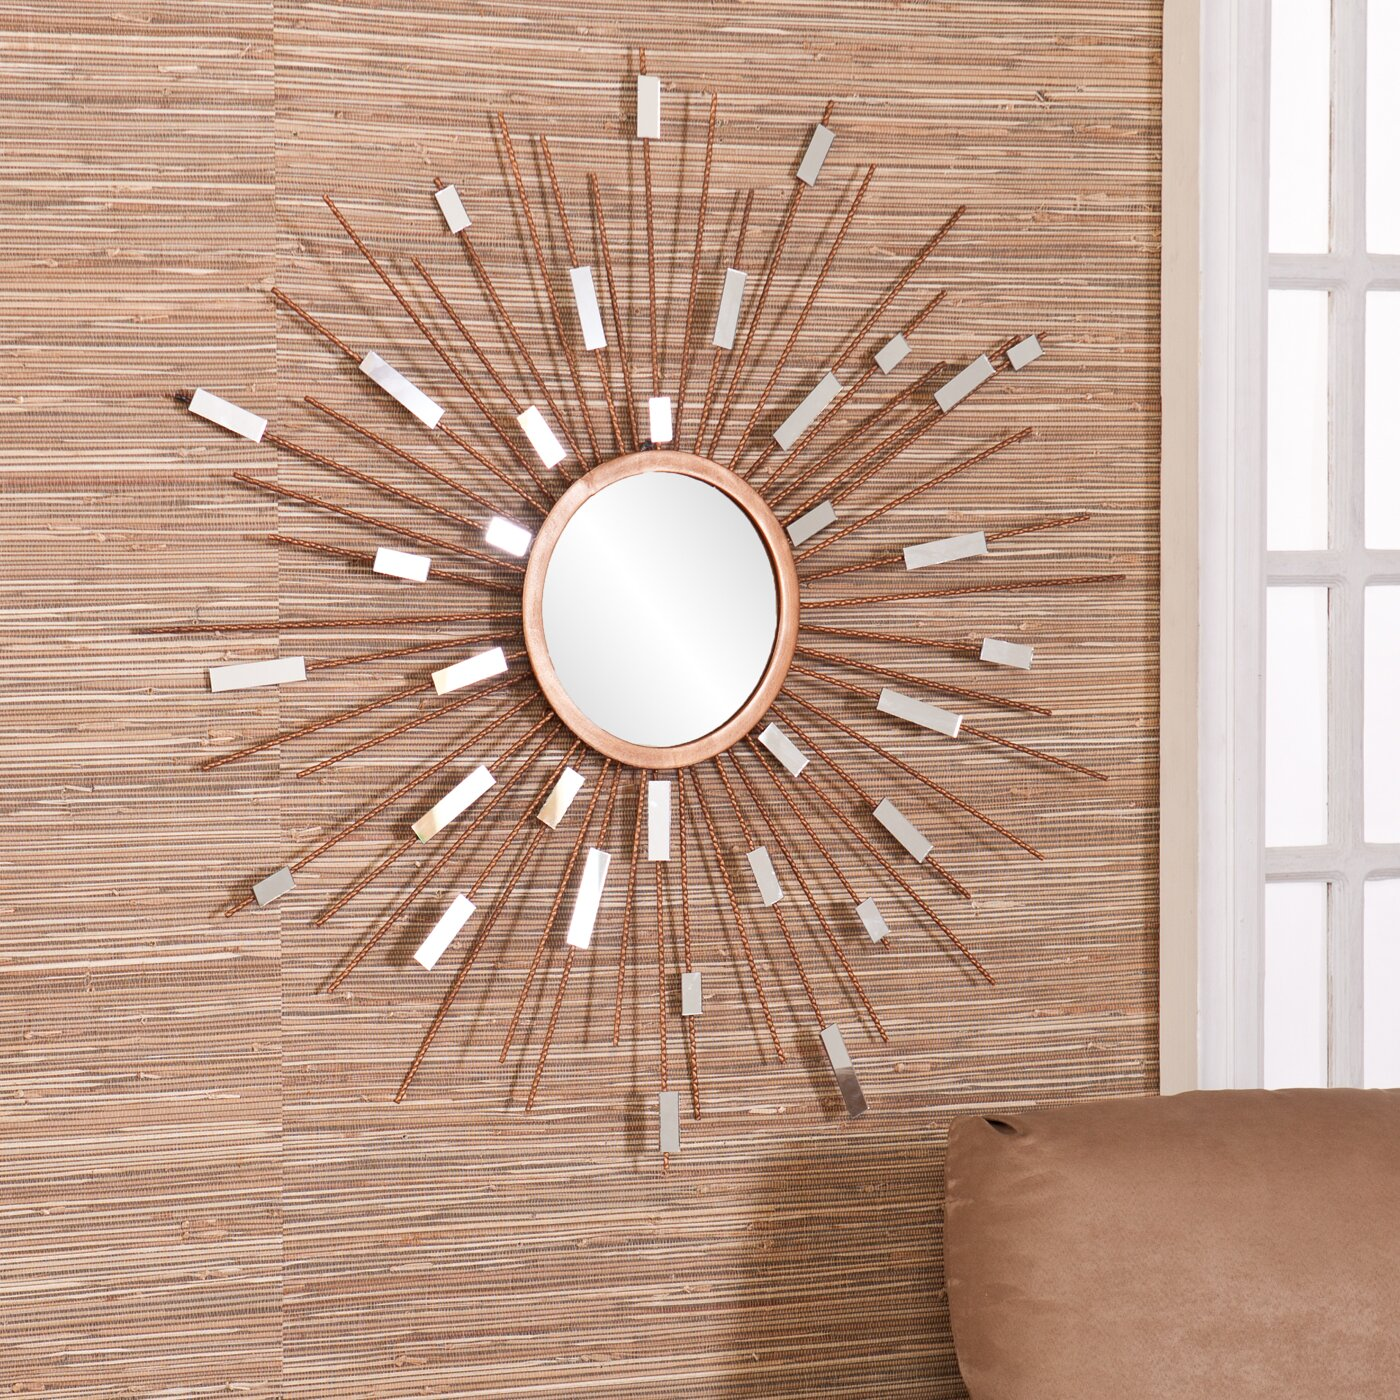 Starburst Wall Decor Mirror: Corrigan Studio Starburst Wall Mirror & Reviews